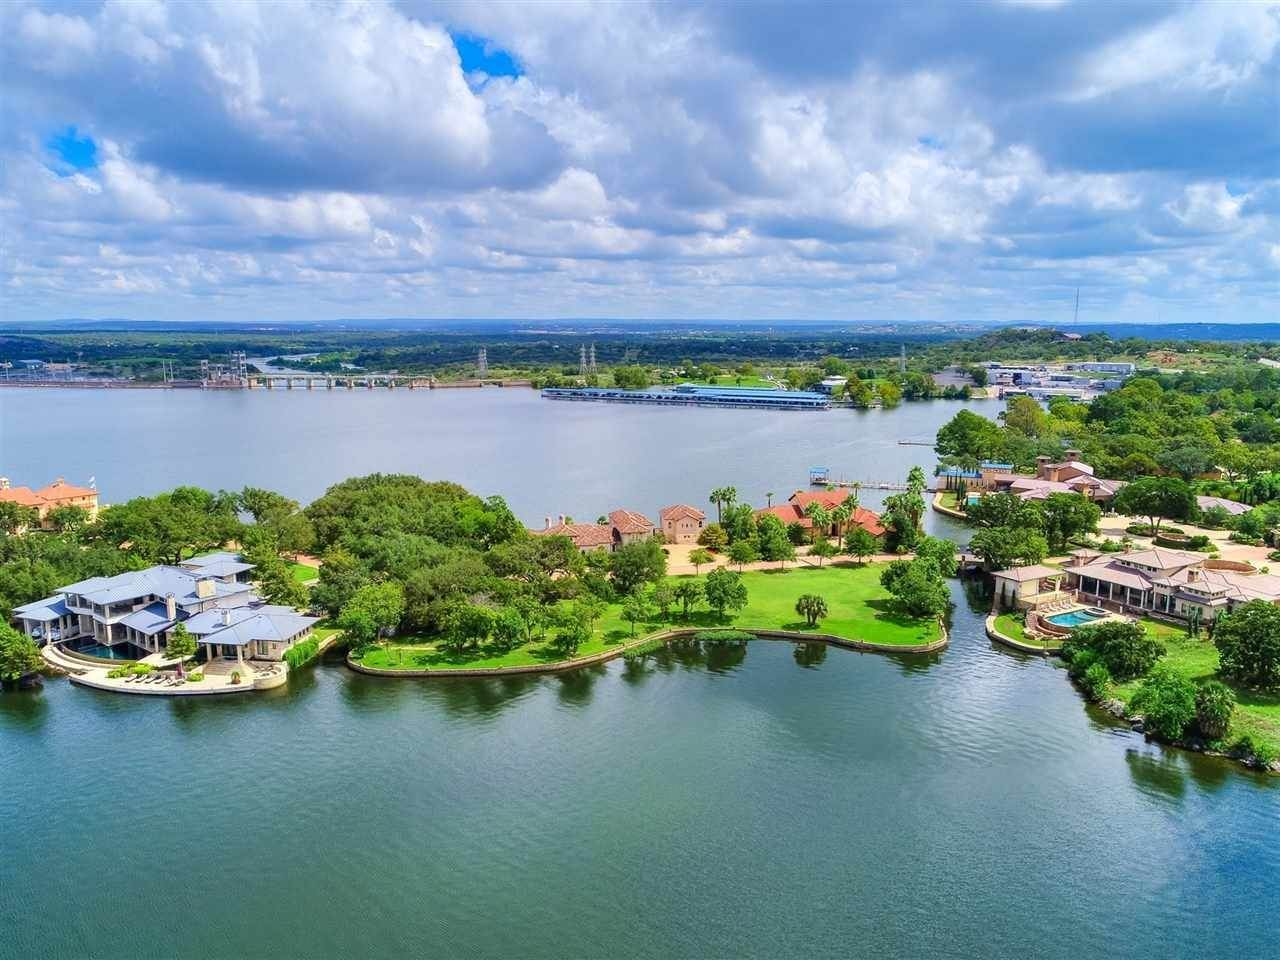 Property for Sale at Legacy Lot 7-A Estate Drive Horseshoe Bay, Texas 78657 United States